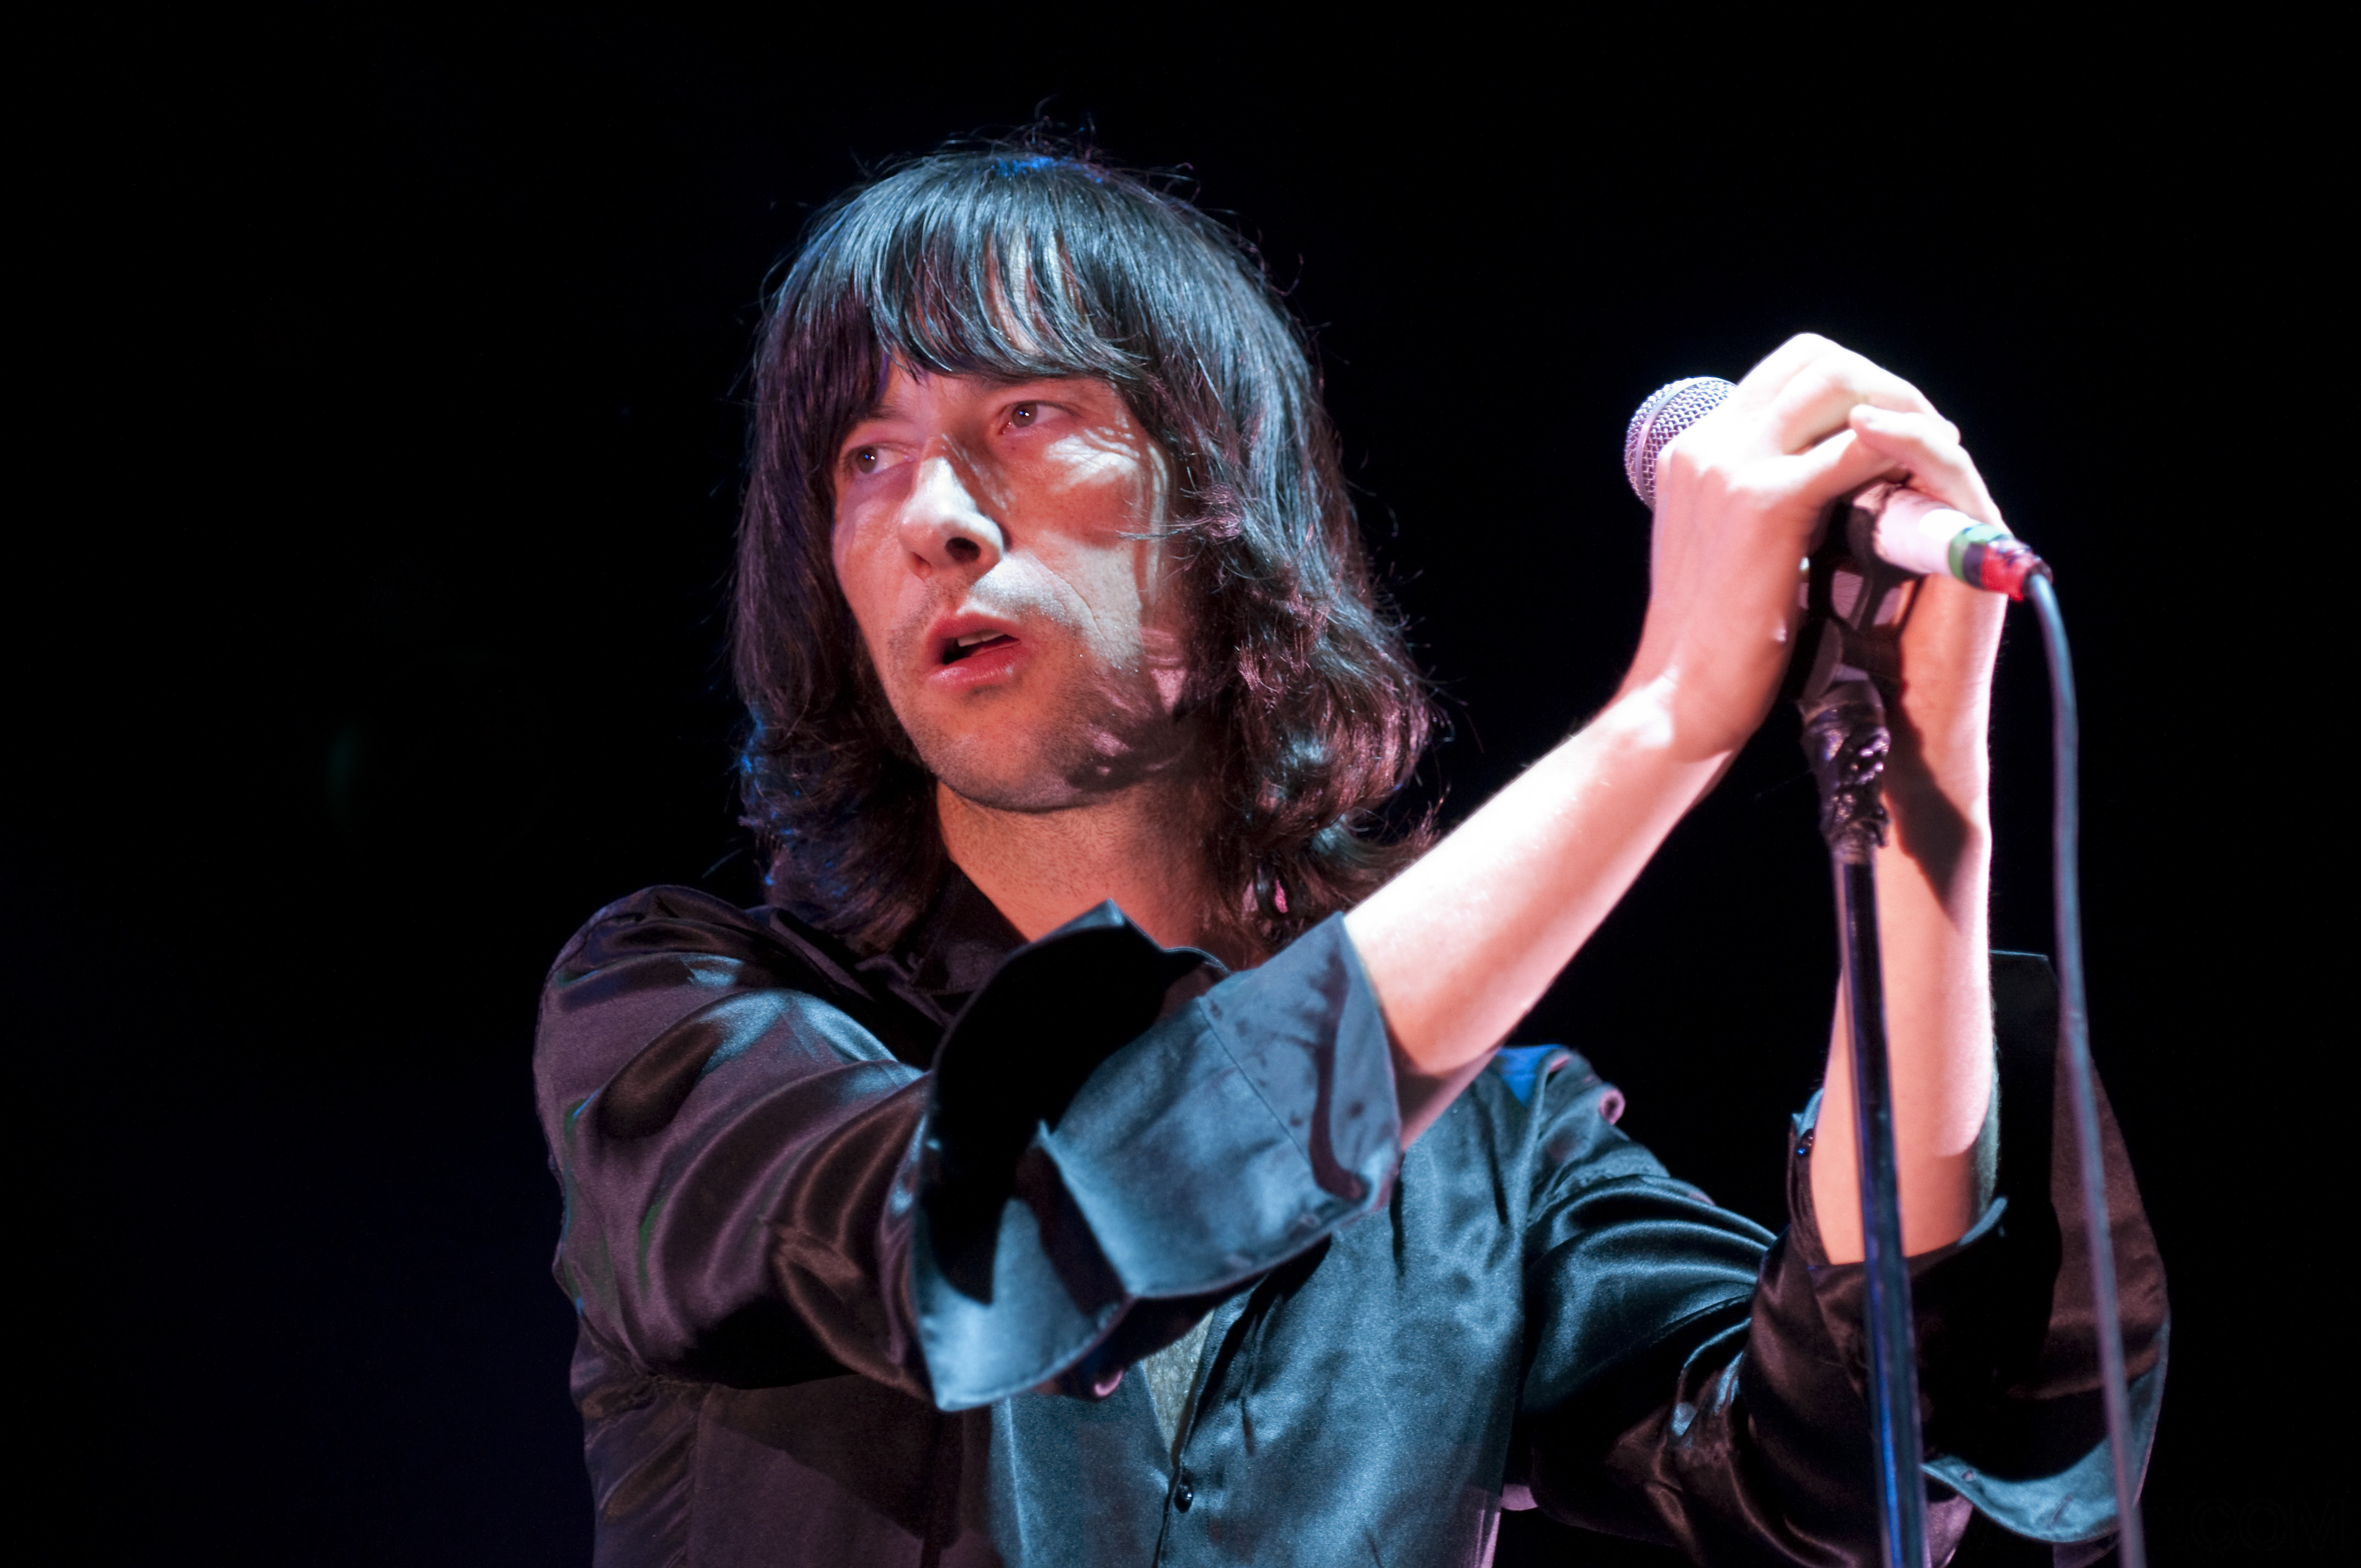 Primal Scream and Andrew Weatherall United - GigslutzGigslutz